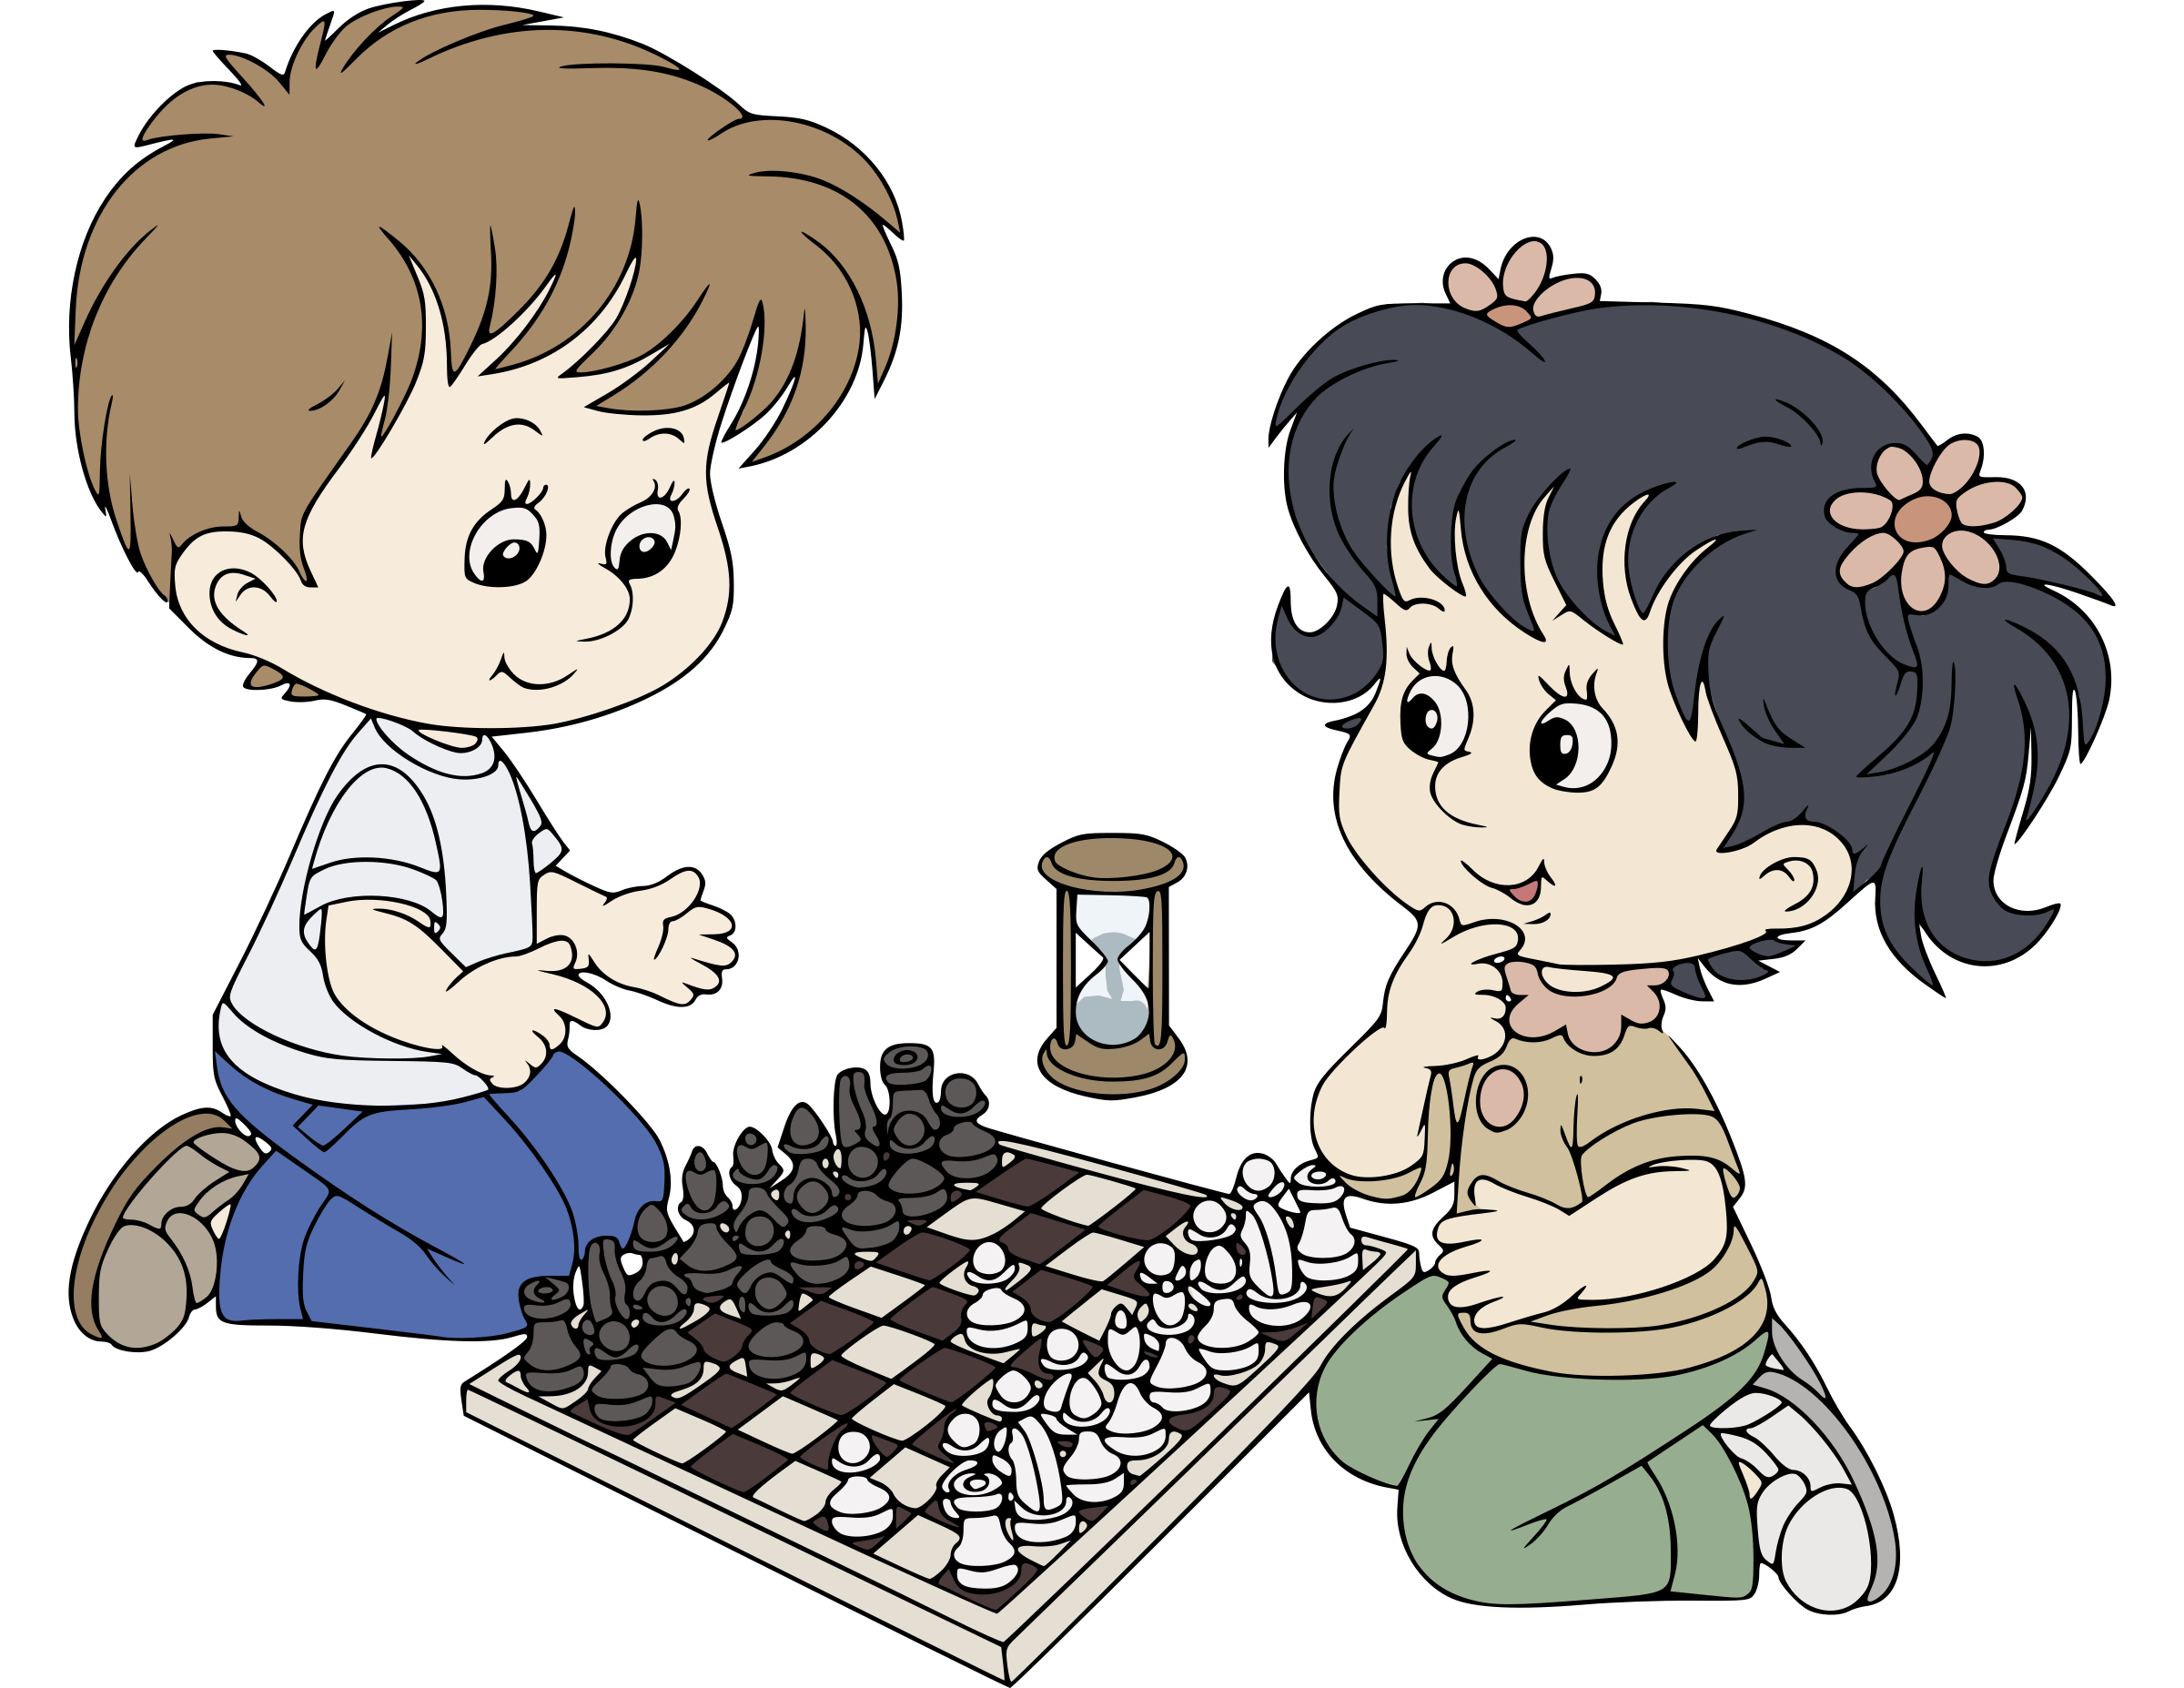 Chess clipart kid chess. Kids playing big image